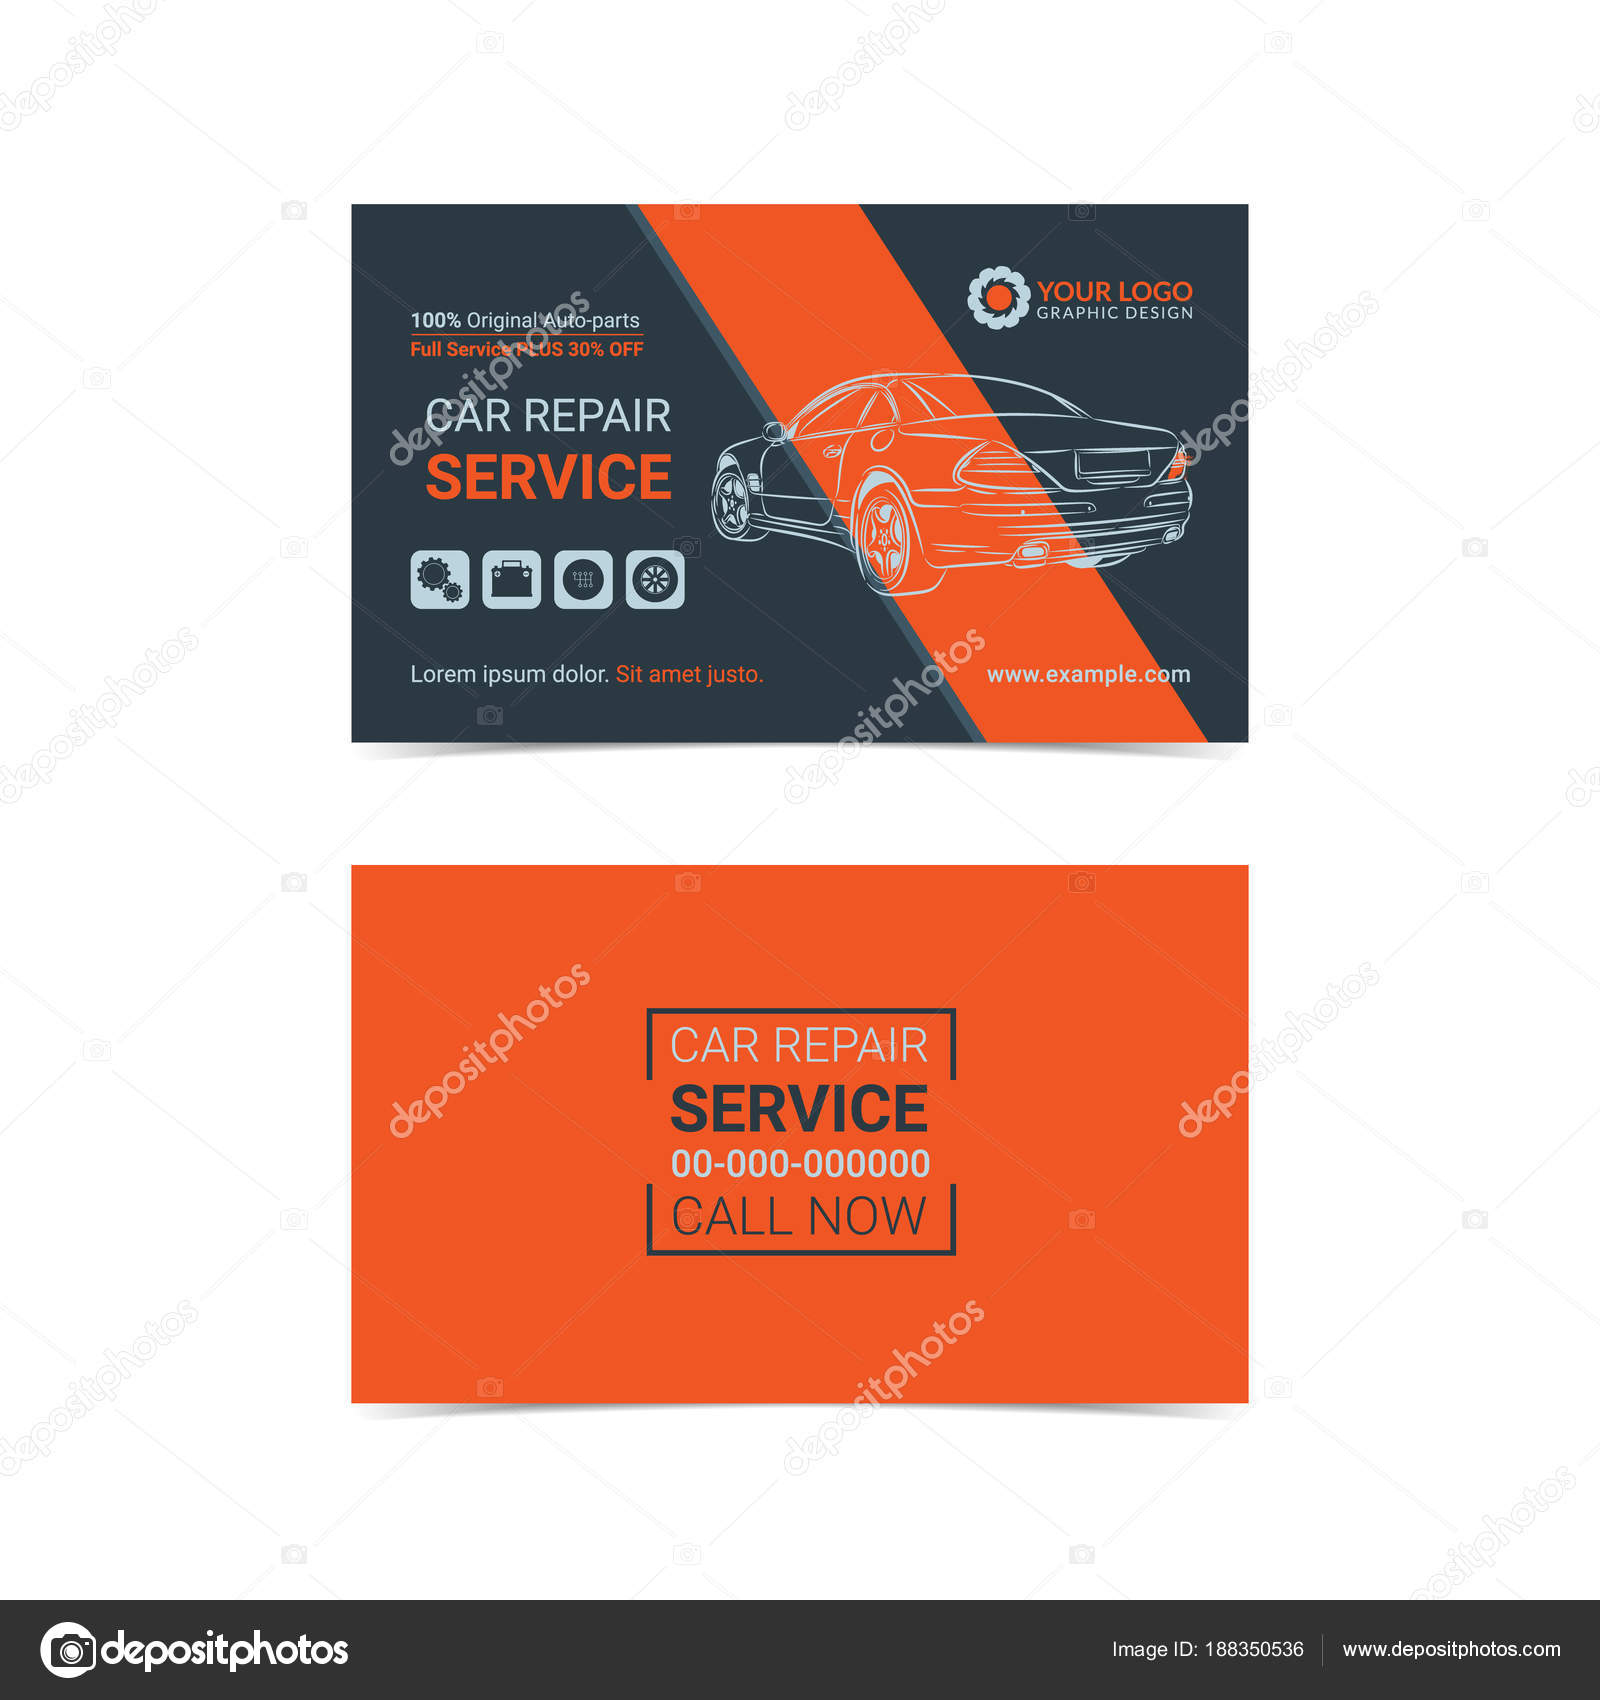 Automotive repair service business cards layout templates create automotive repair service business cards layout templates create your own business cards mockup vector reheart Image collections